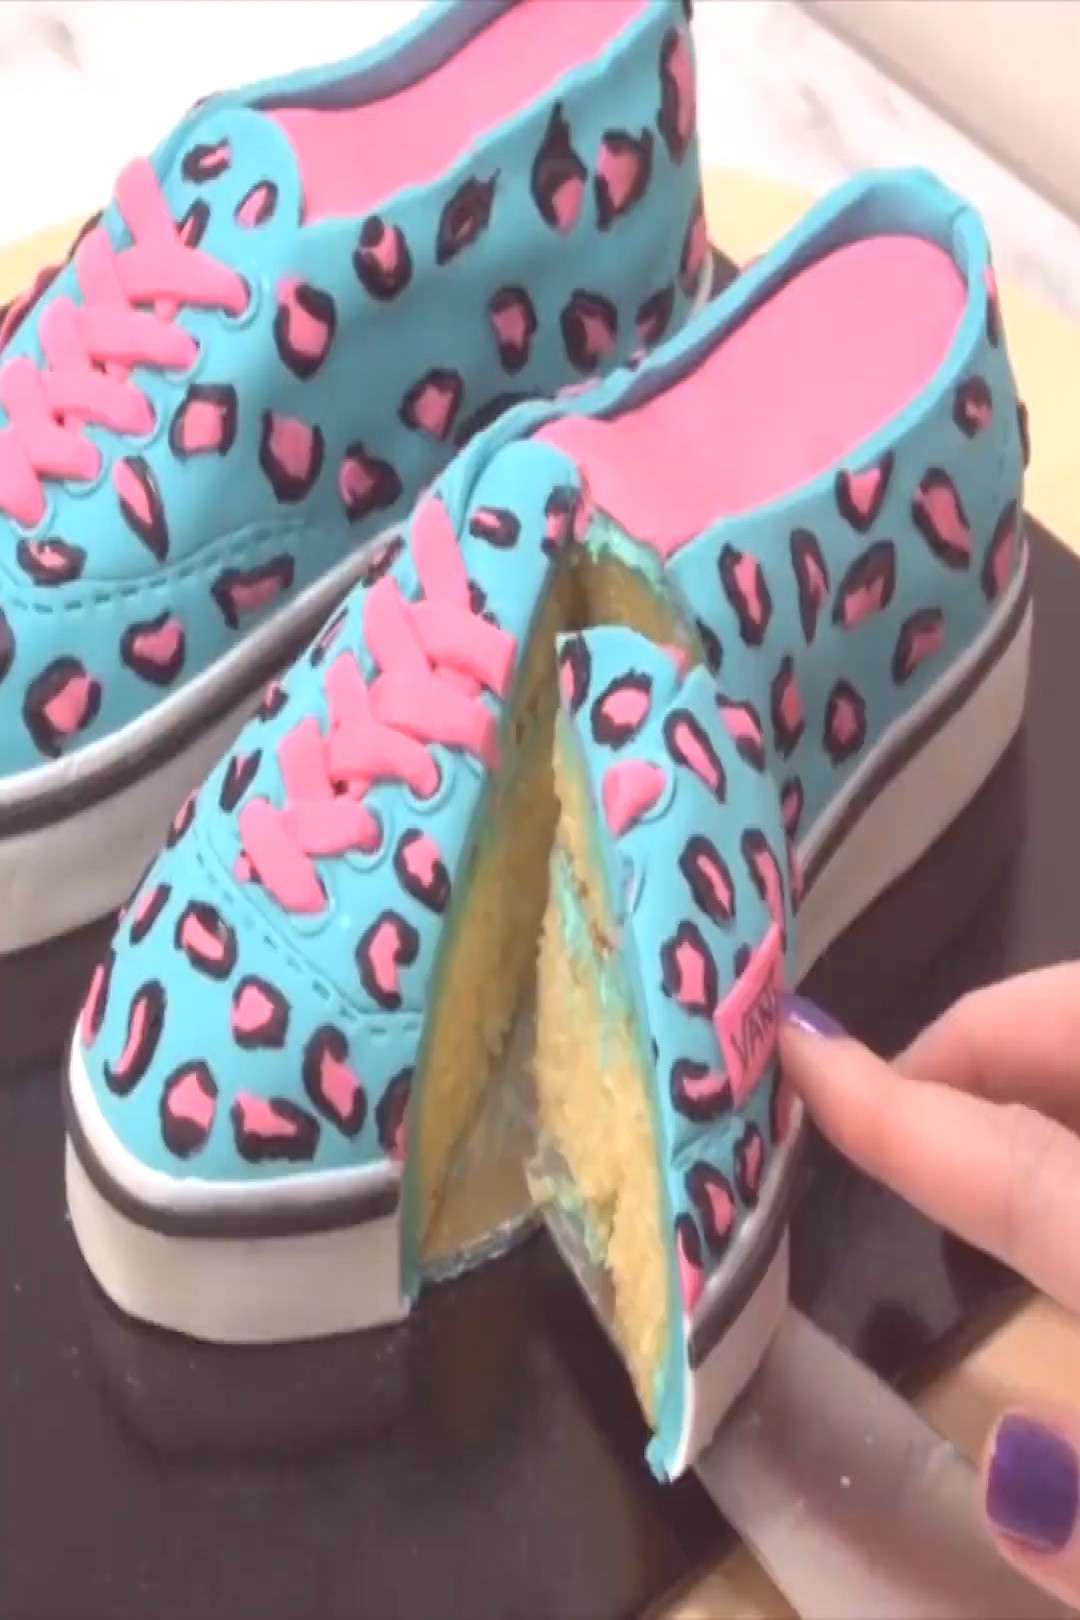 CAKE SHOES Shoe-themed cake to satisfy your sweet tooth! Credit Cake Style